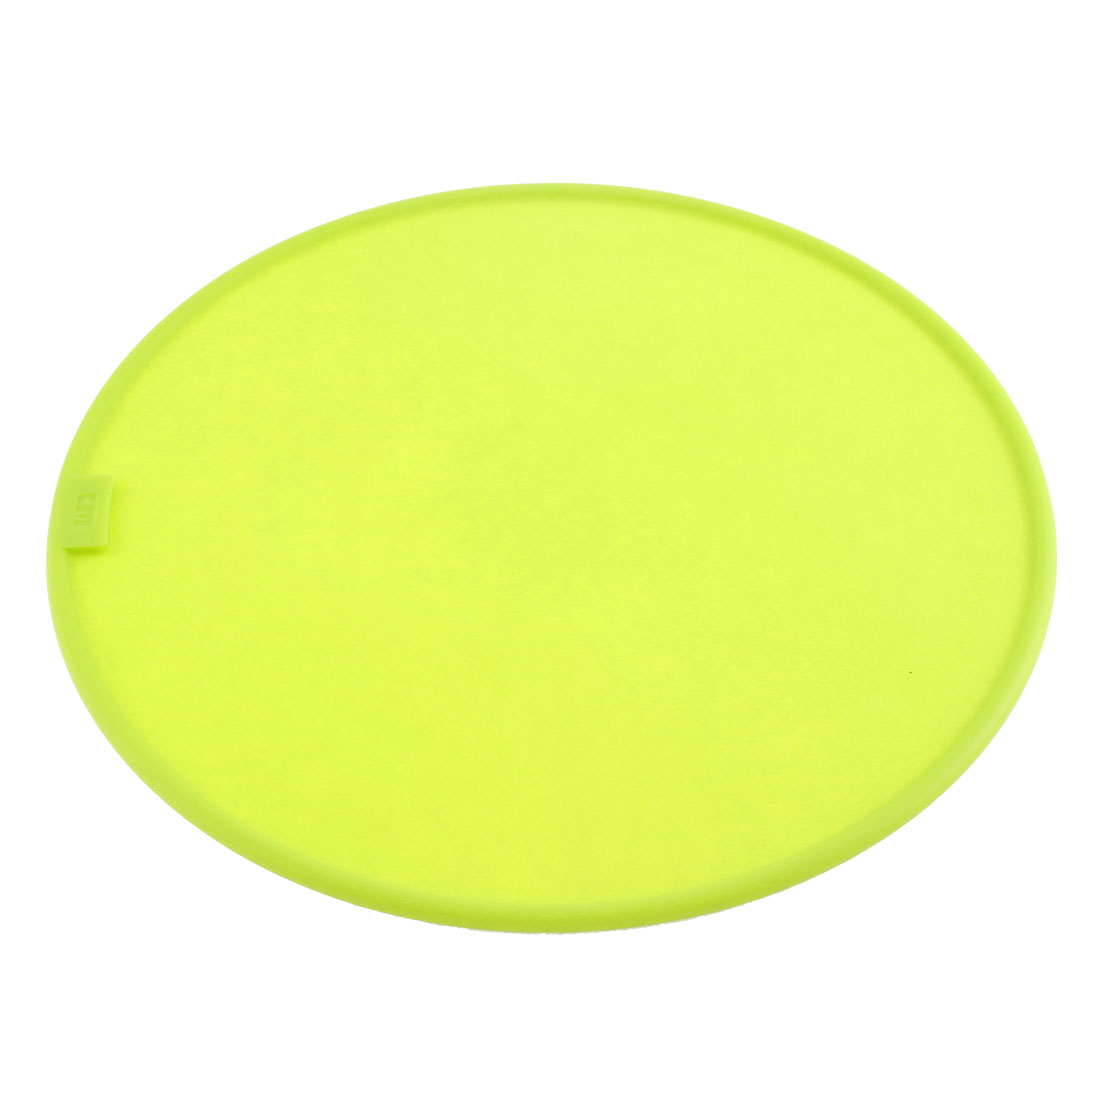 Kitchen Silicone Round Shaped Pot Pan Plate Heat Resistant Mat Pad Green Yellow